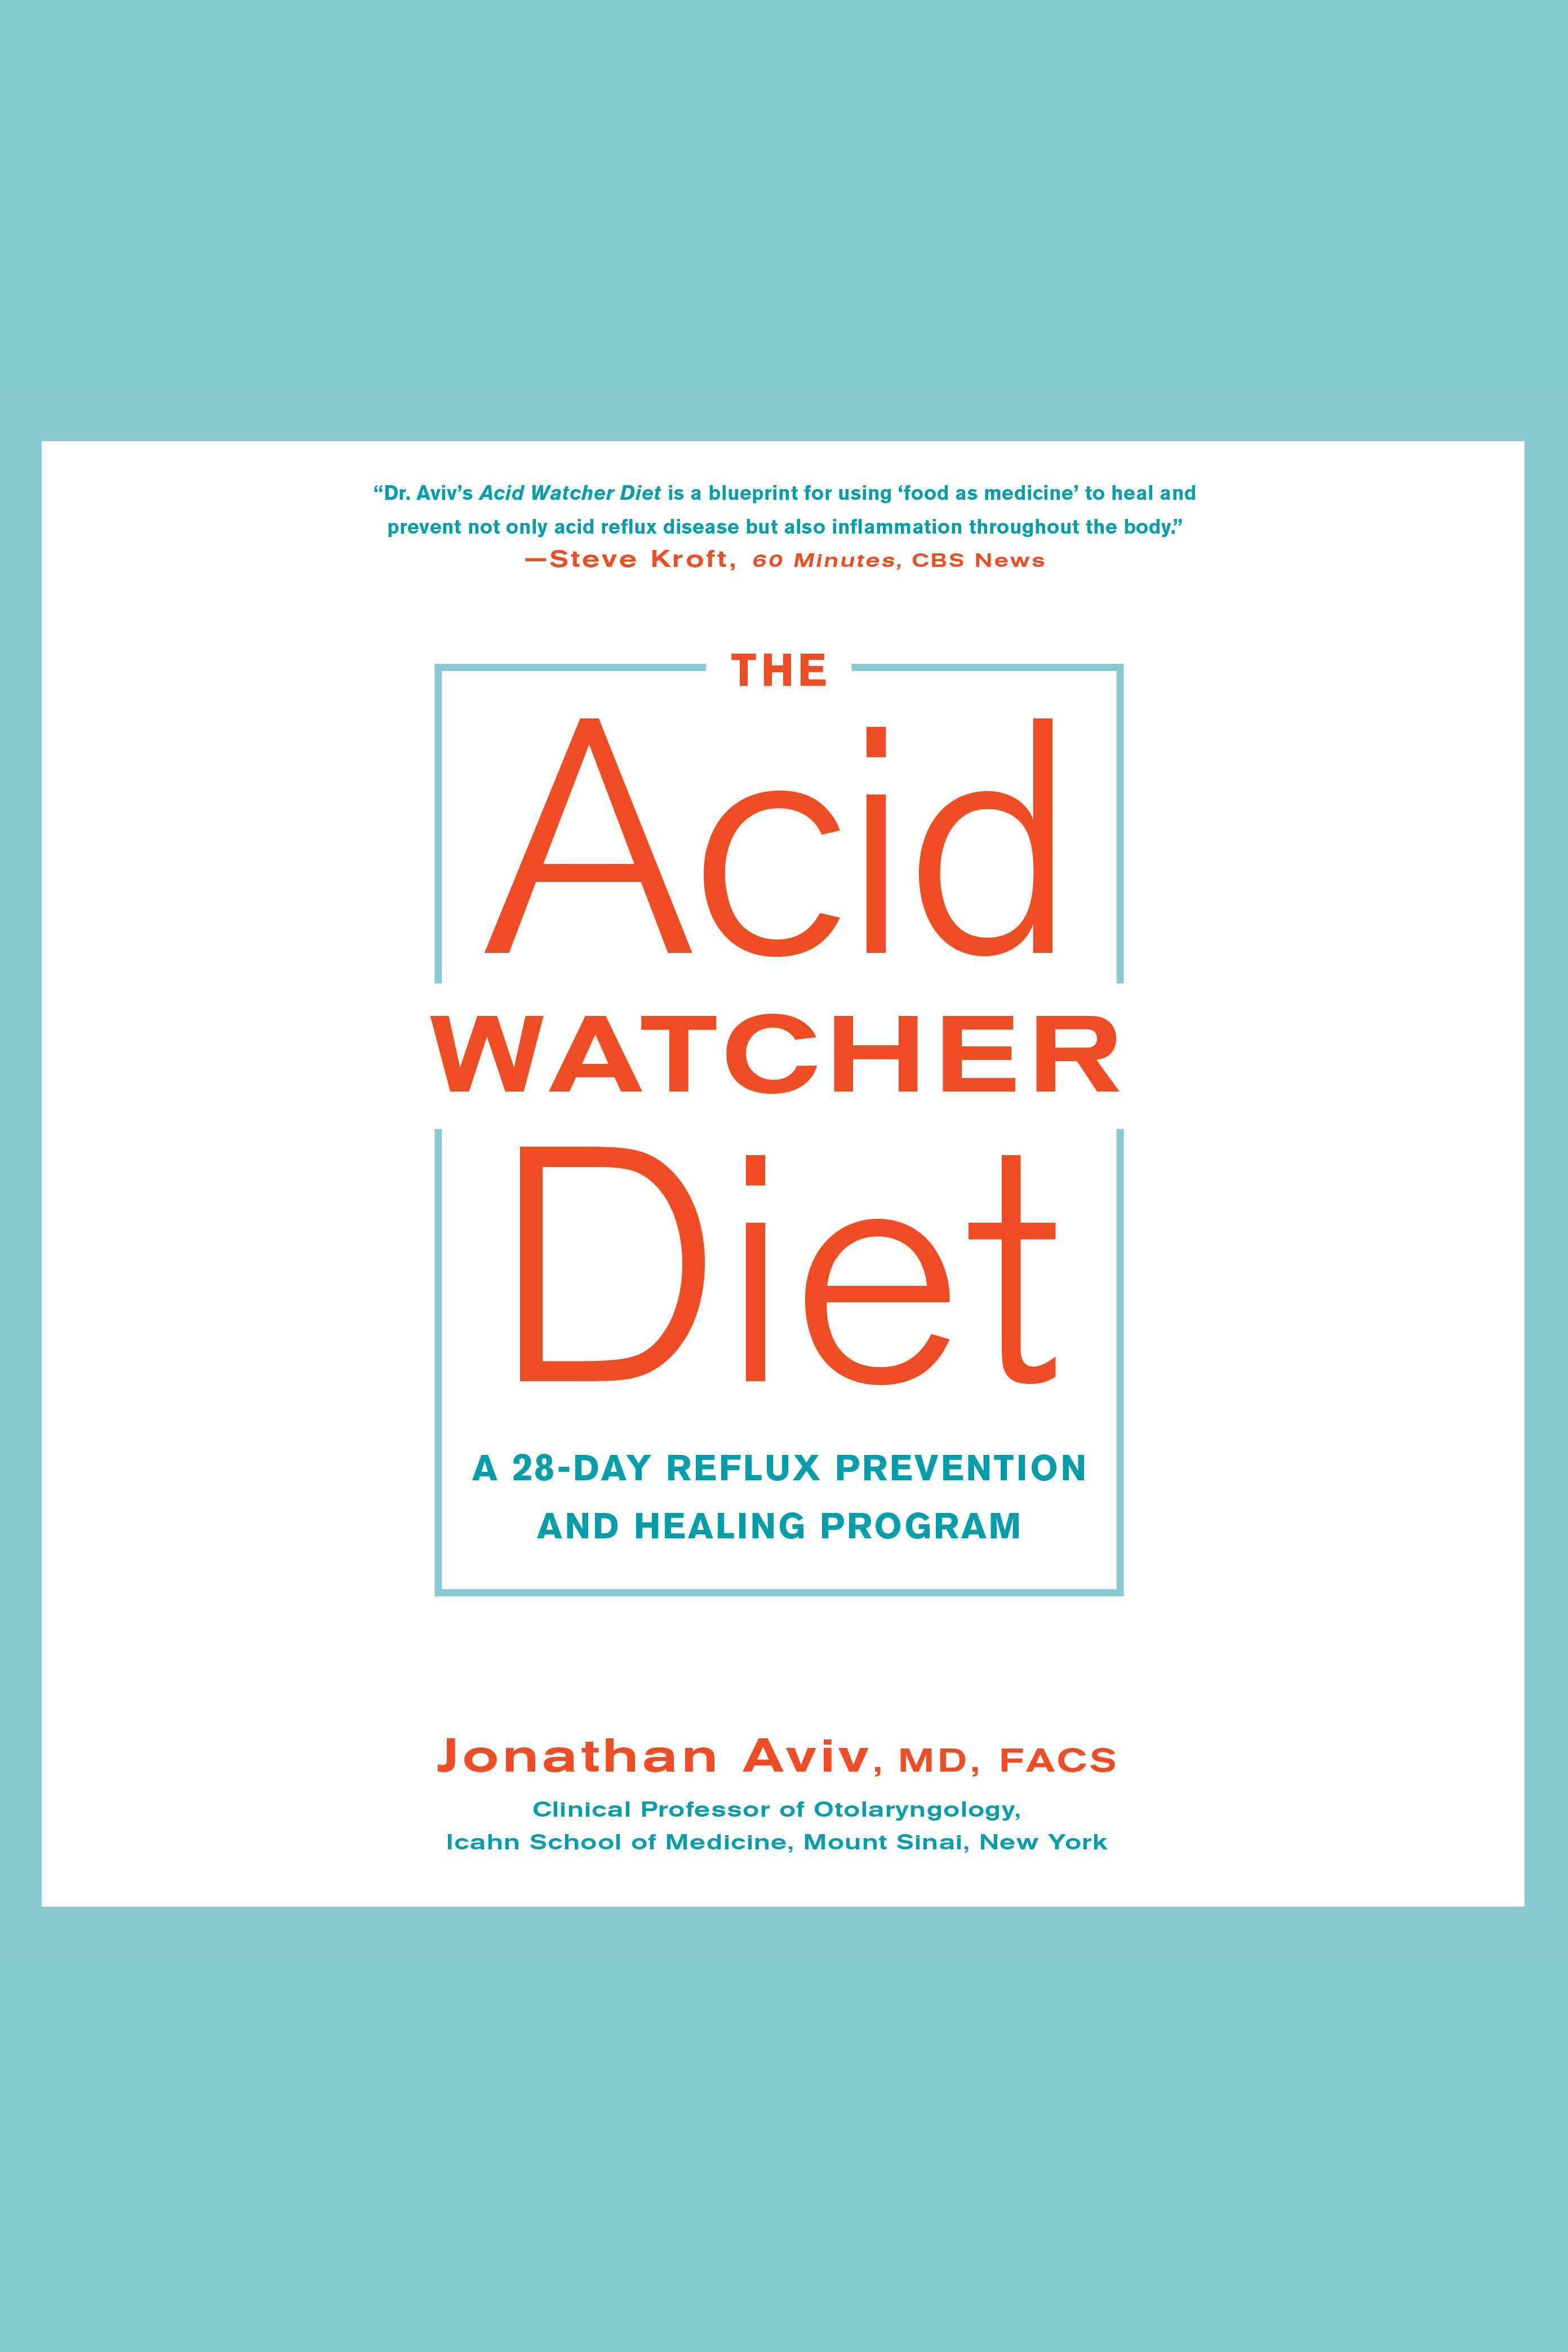 Acid Watcher Diet, The A 28-Day Reflux Prevention and Healing Program